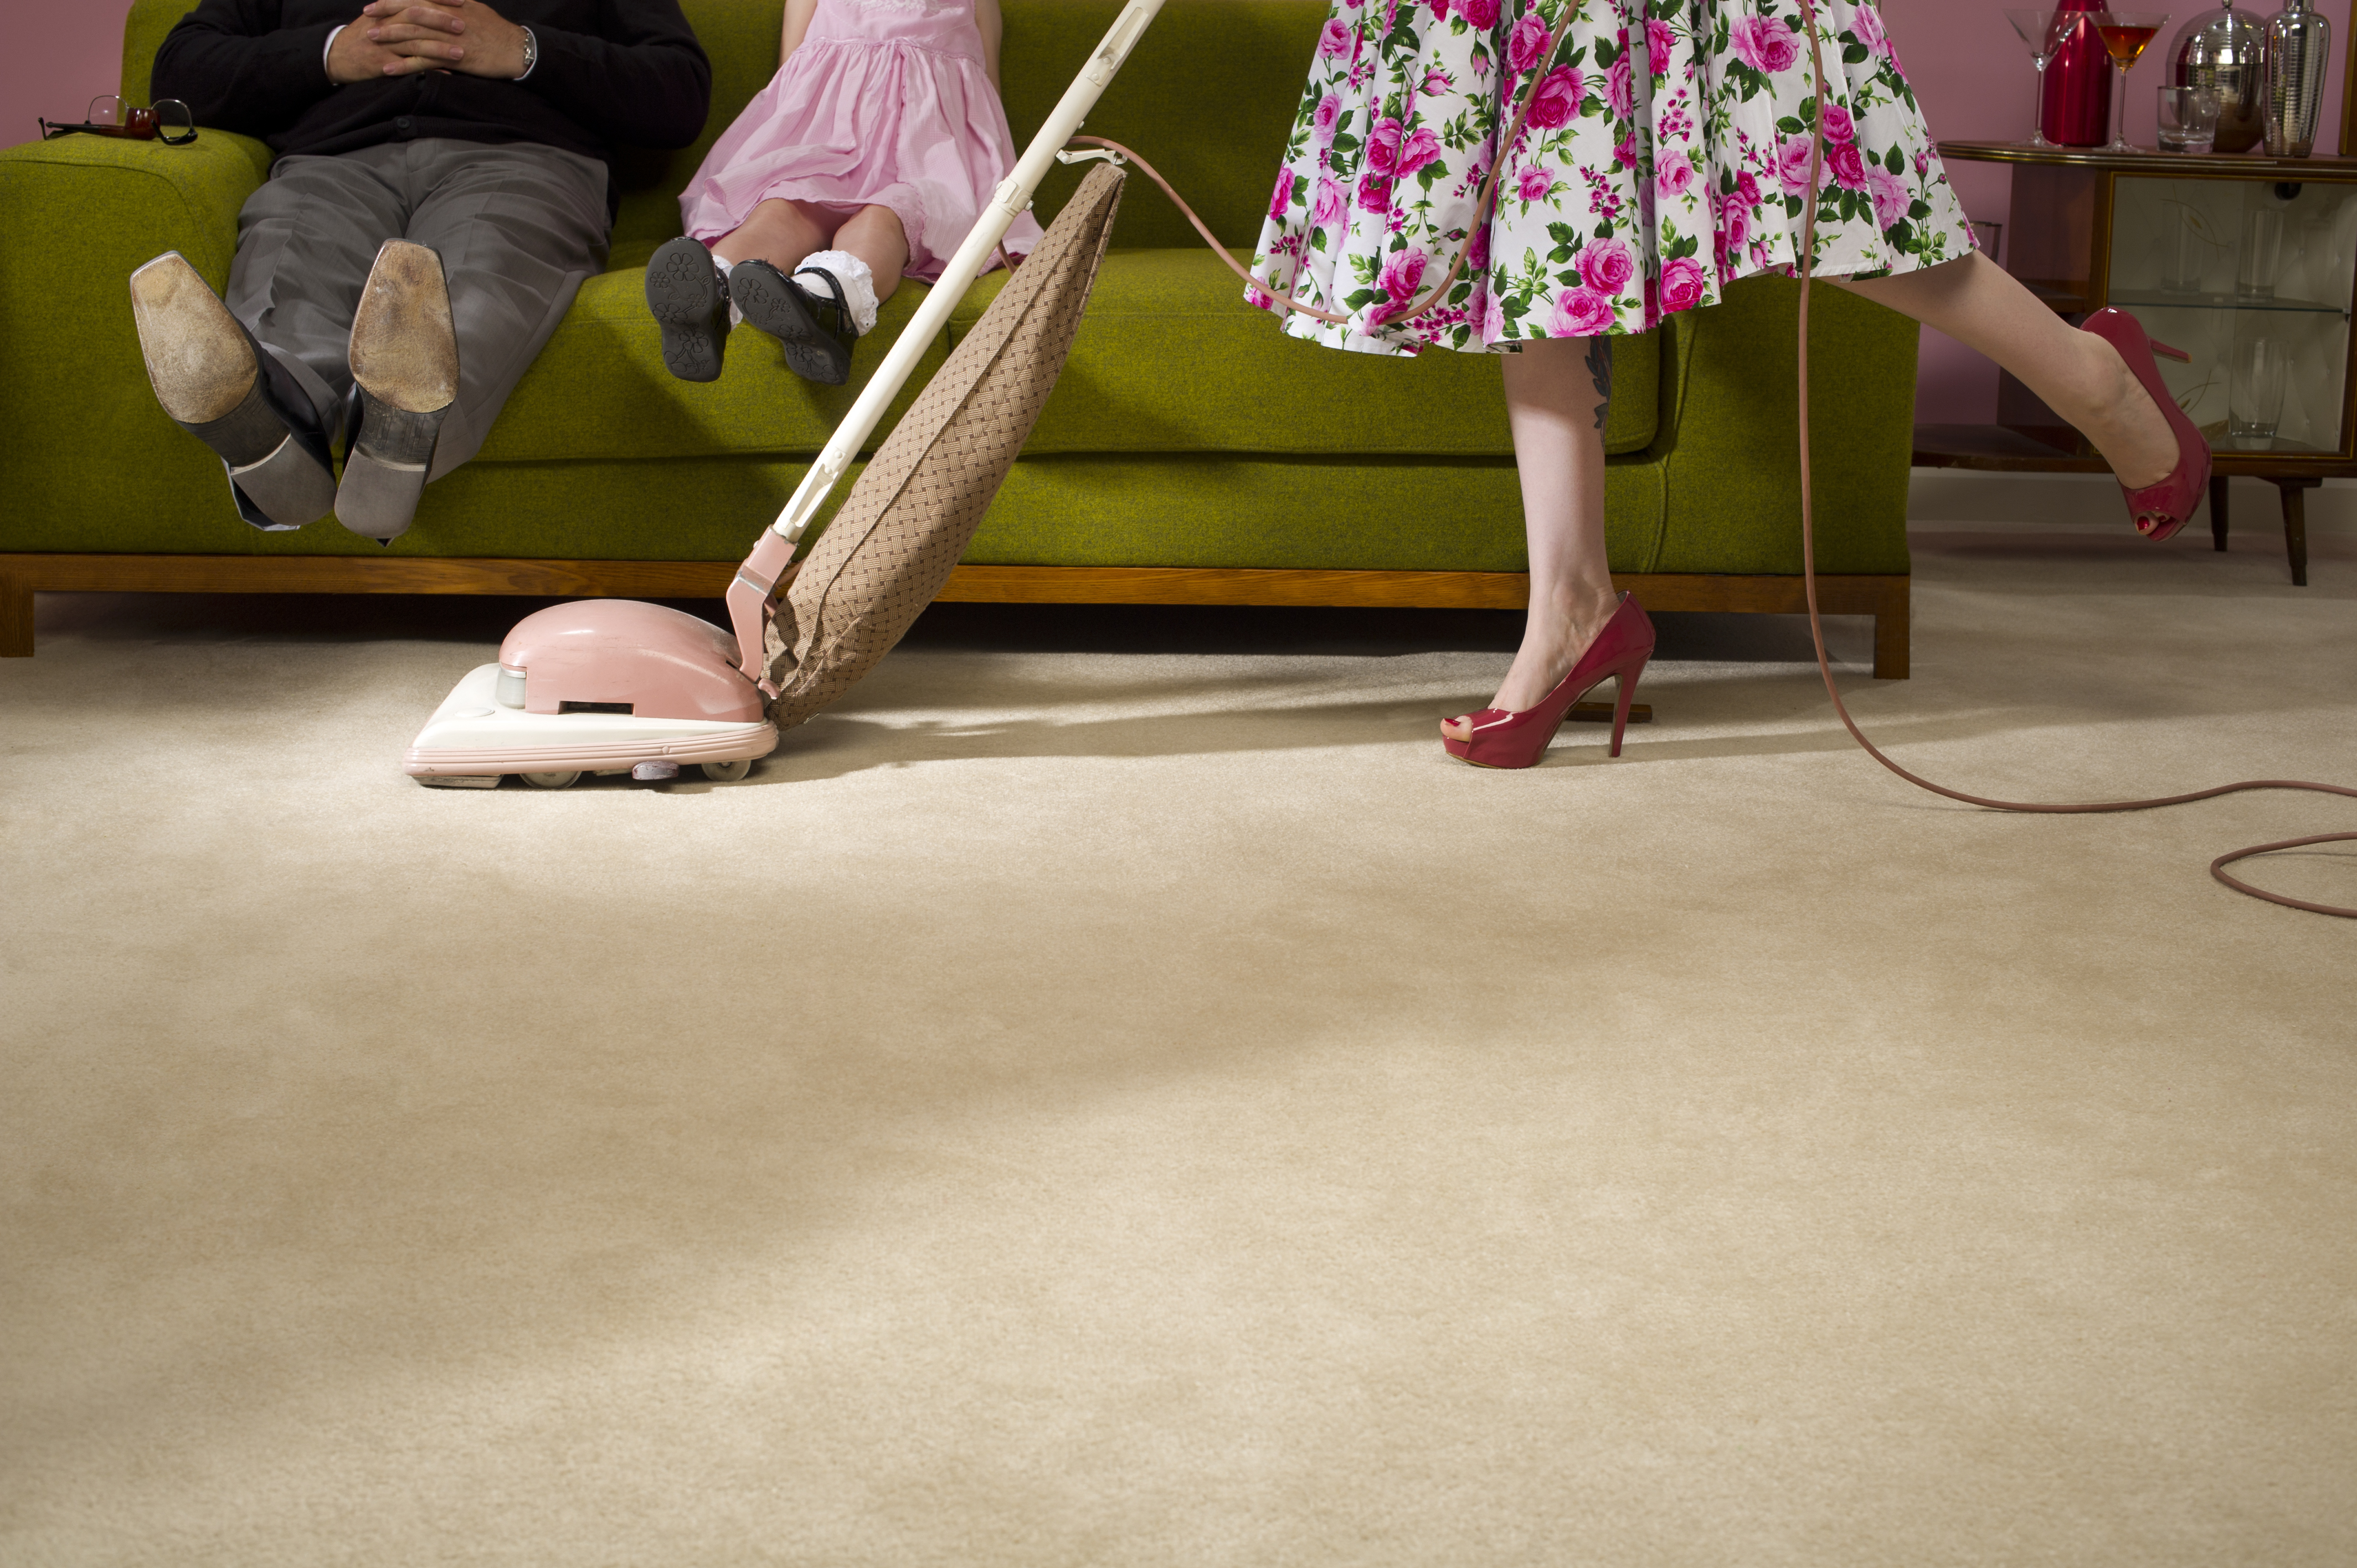 Housewife hoovers under the family trying to keep her copy space clean